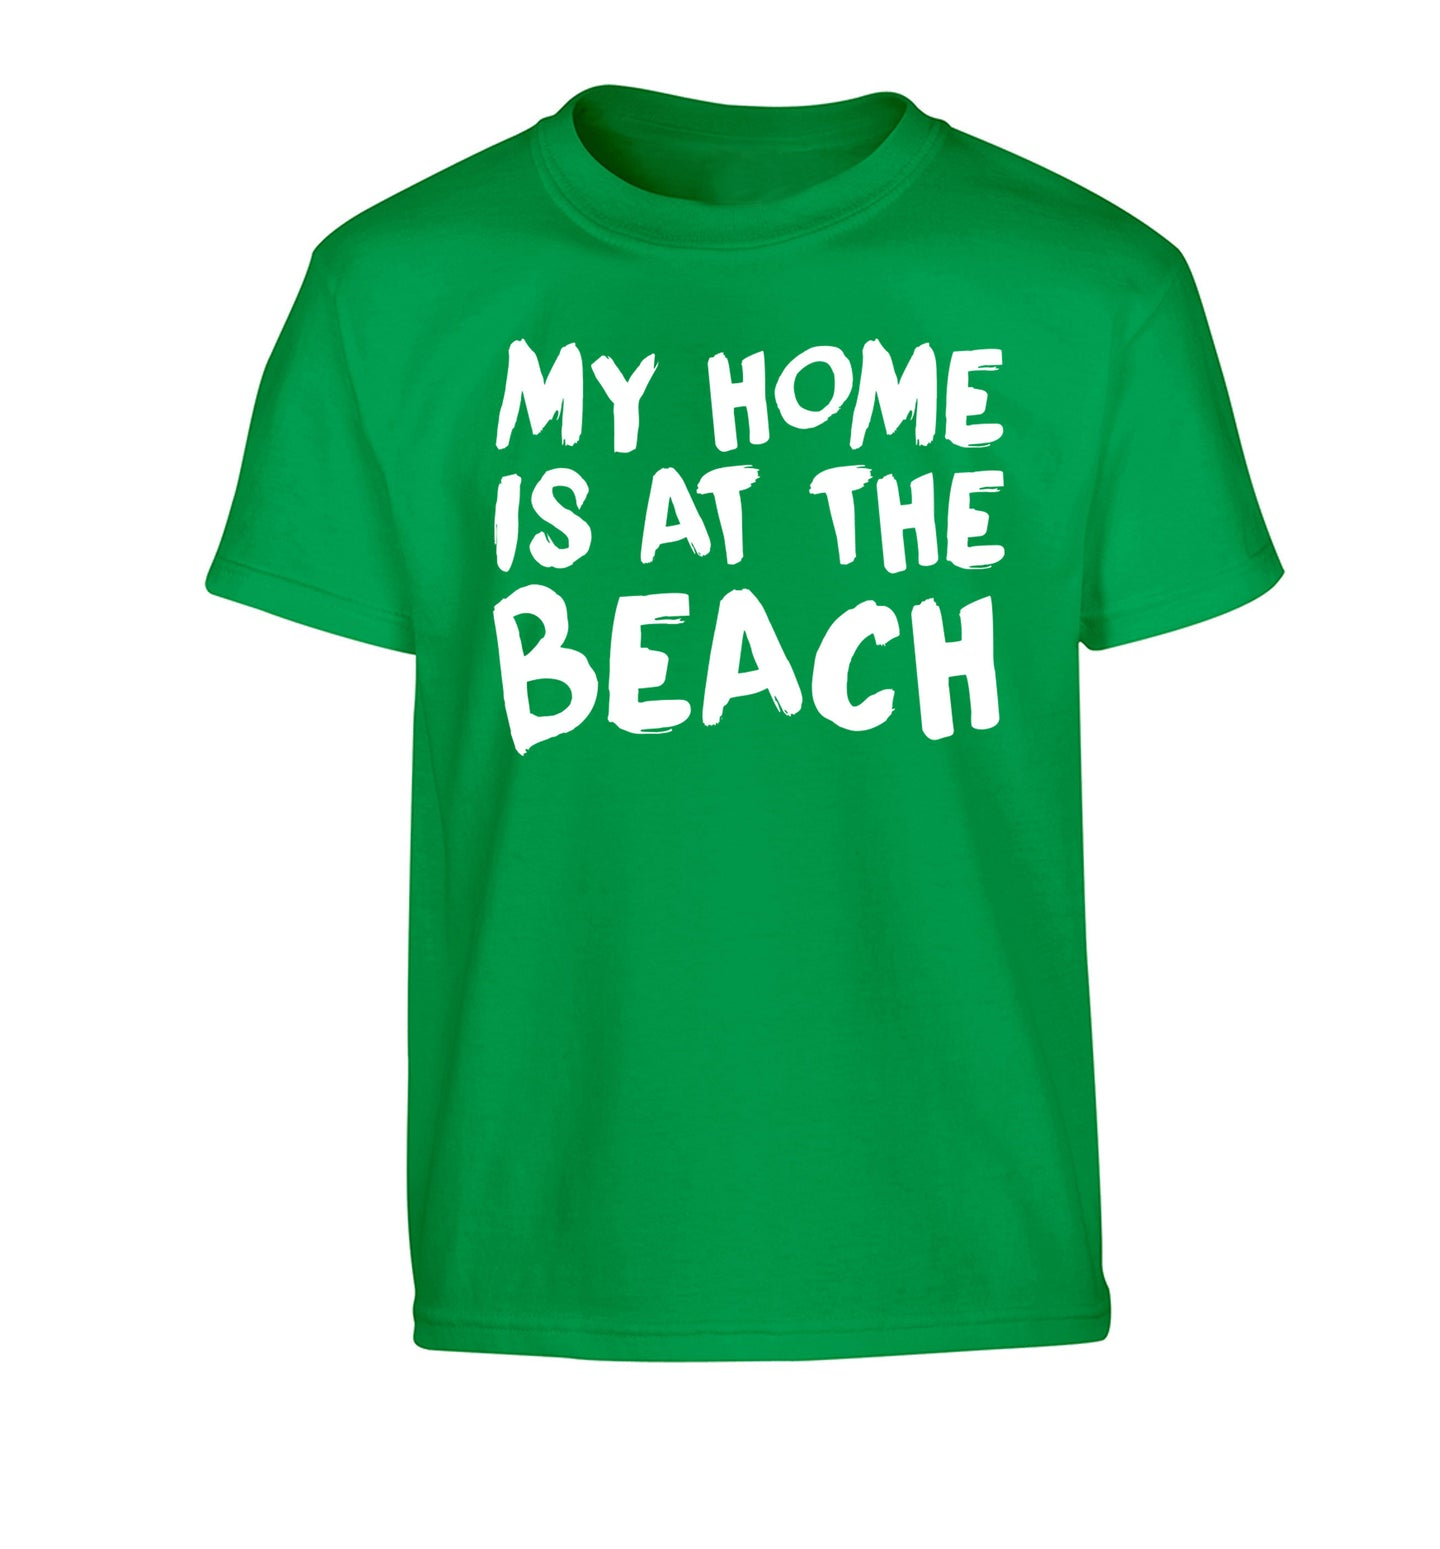 My home is at the beach Children's green Tshirt 12-14 Years